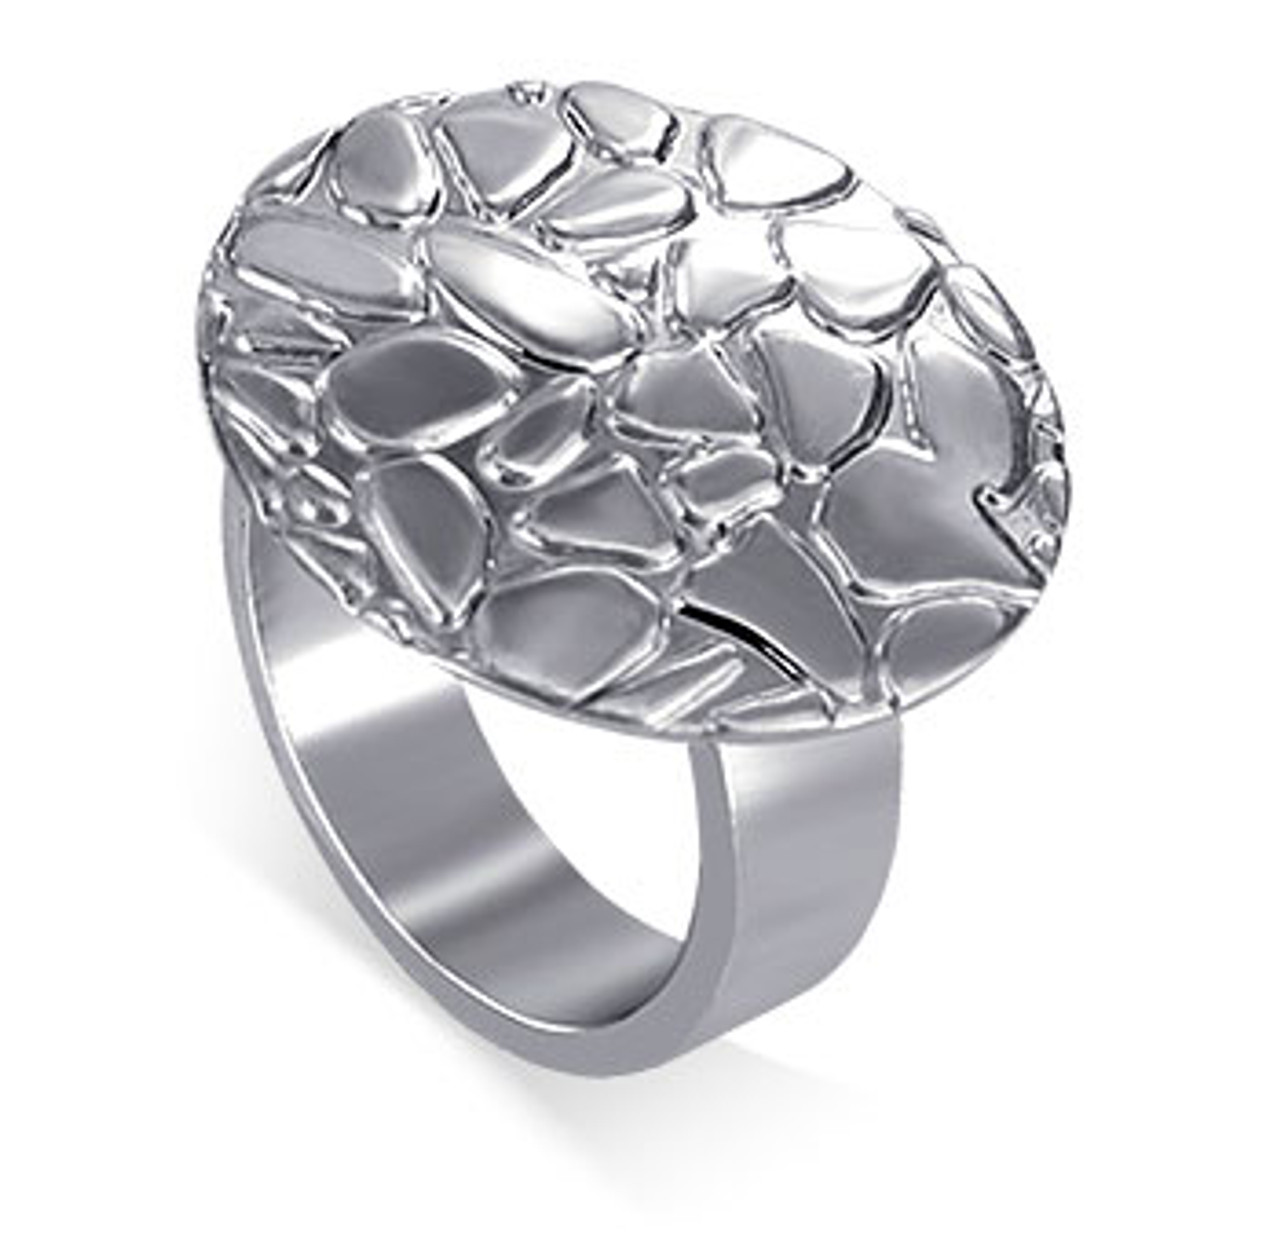 925 Sterling Silver 1 inch Round Texture Ring